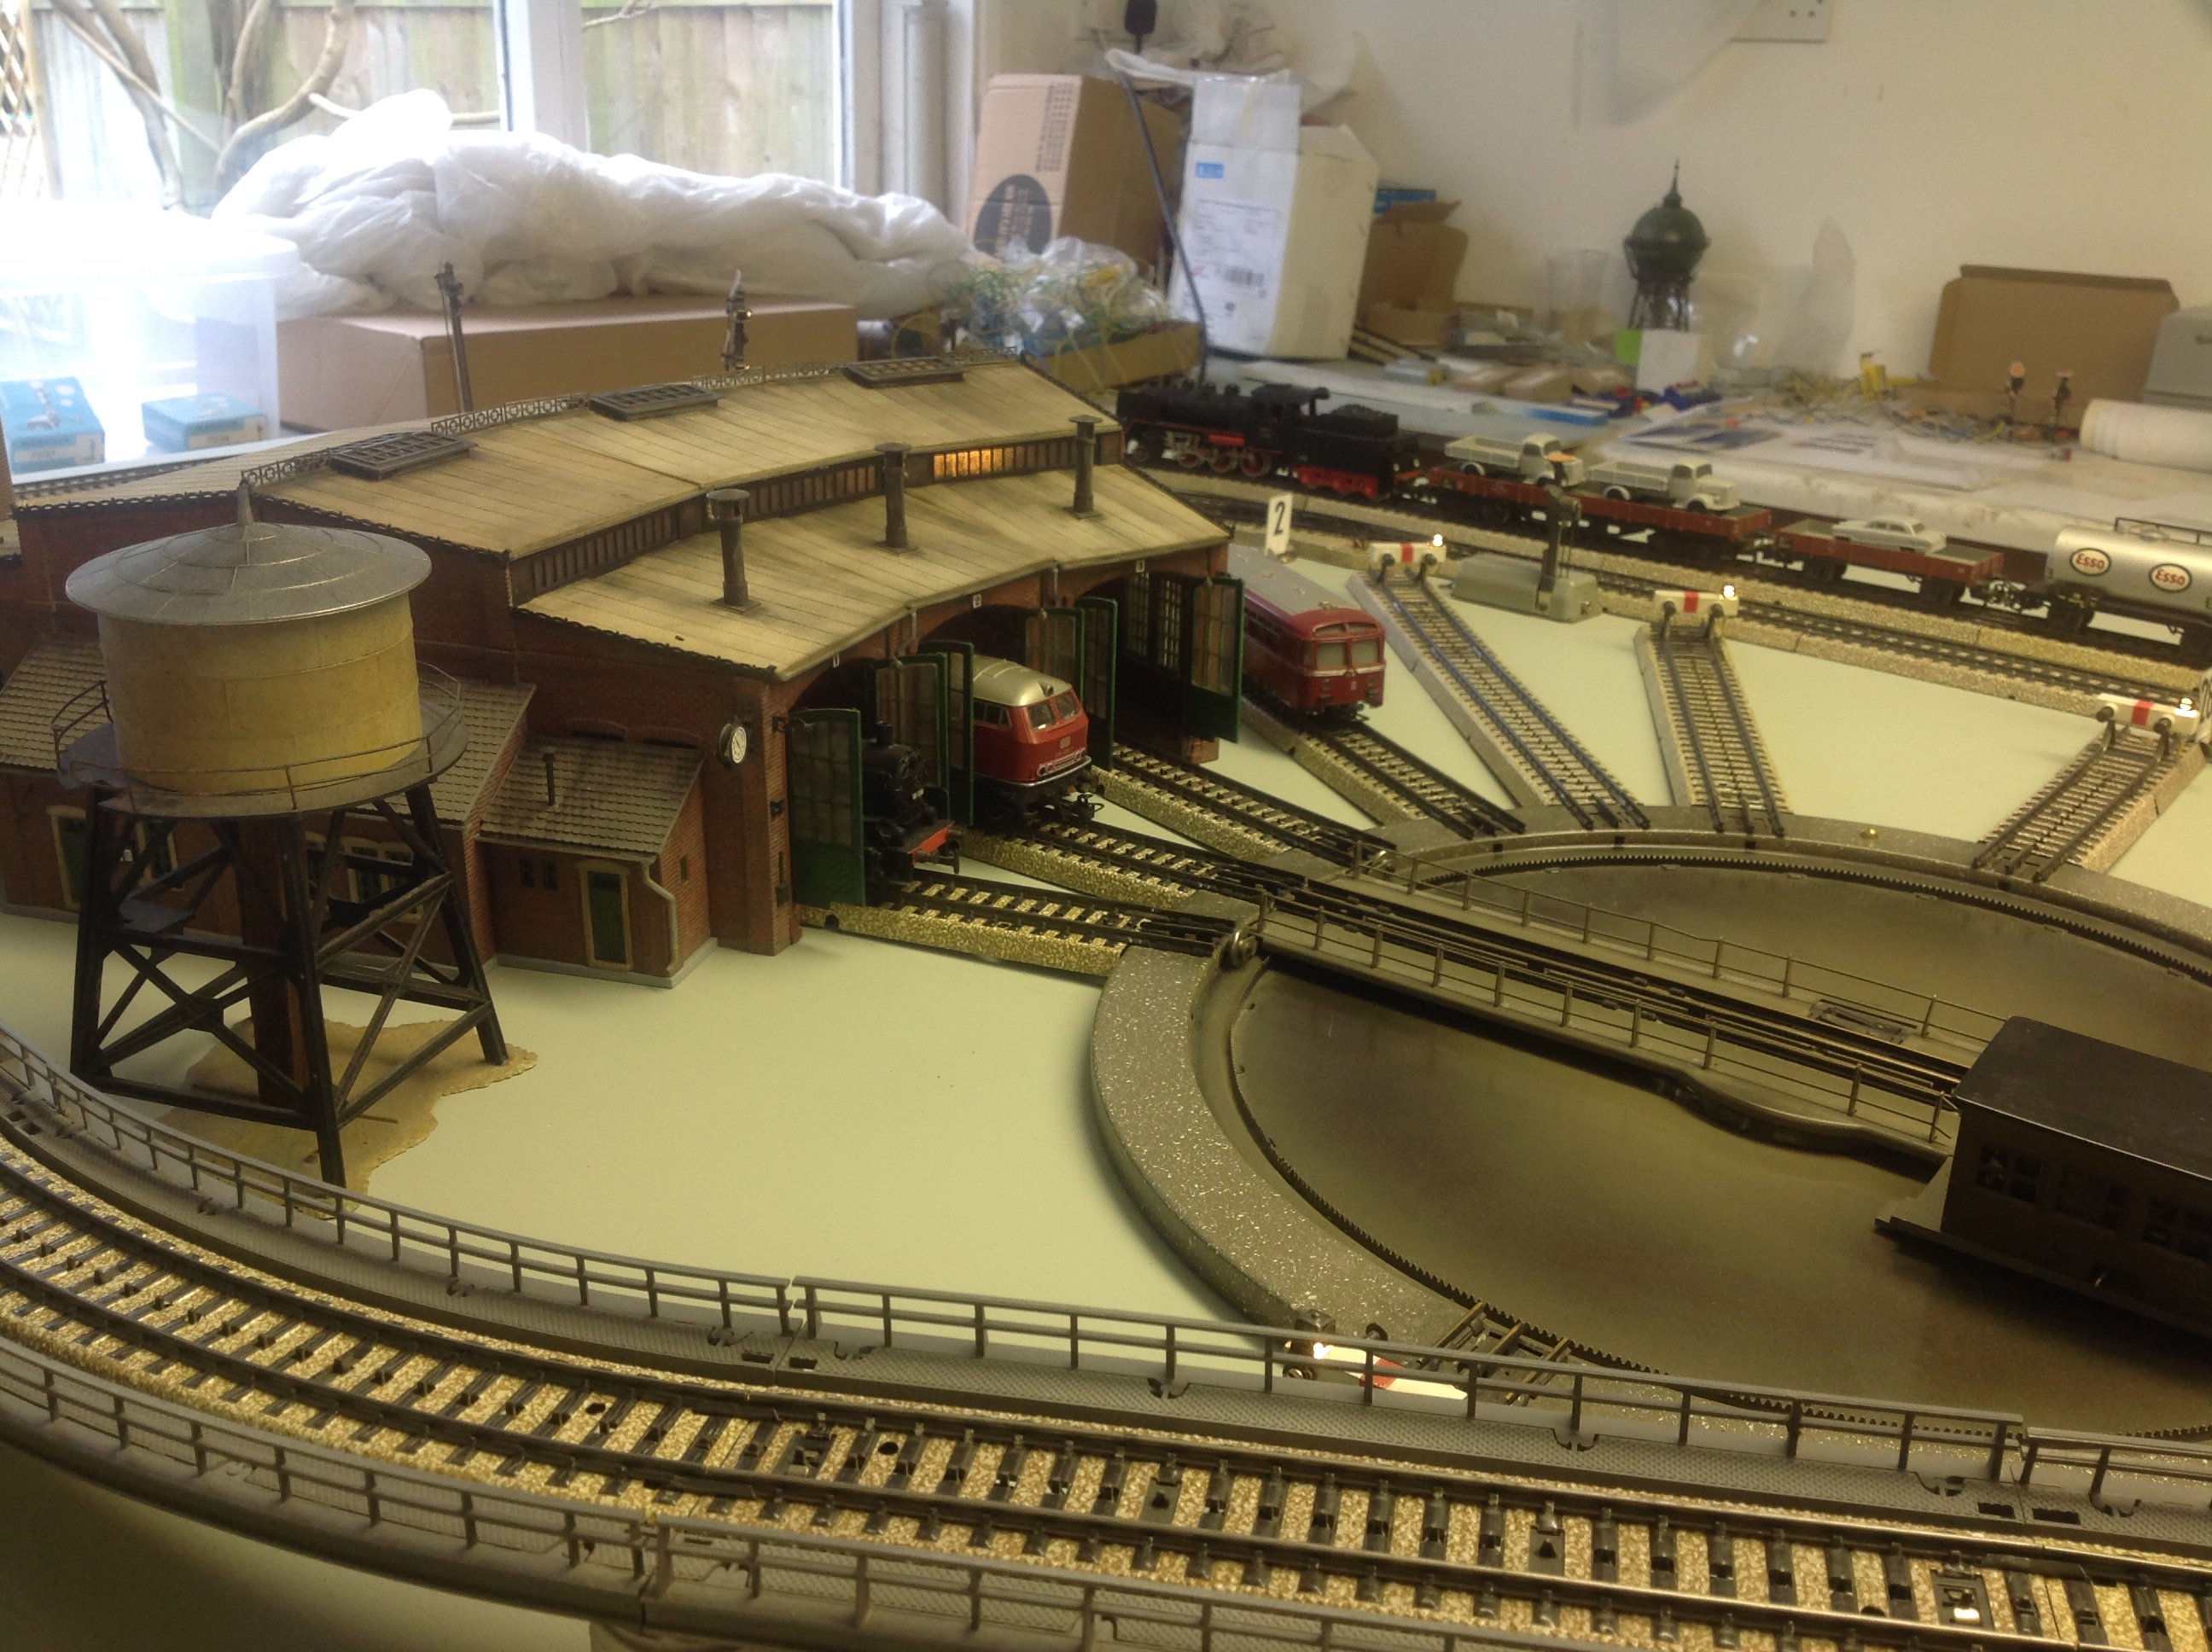 Severn Valley Railway Announce Their First Guest For 2018 Autumn Steam Gala moreover Marklin Maxi 45296 0 6 0 Steam Loco Tender 45297 Pass Car Set moreover Zacks Amazing 4 X 8 N Scale Model Train Layout moreover Layout  bines Simplicity Of Vintage And Realism Of Modern as well Bachmann HO Norfolk Western N W J Class 222027182820. on locomotive repair